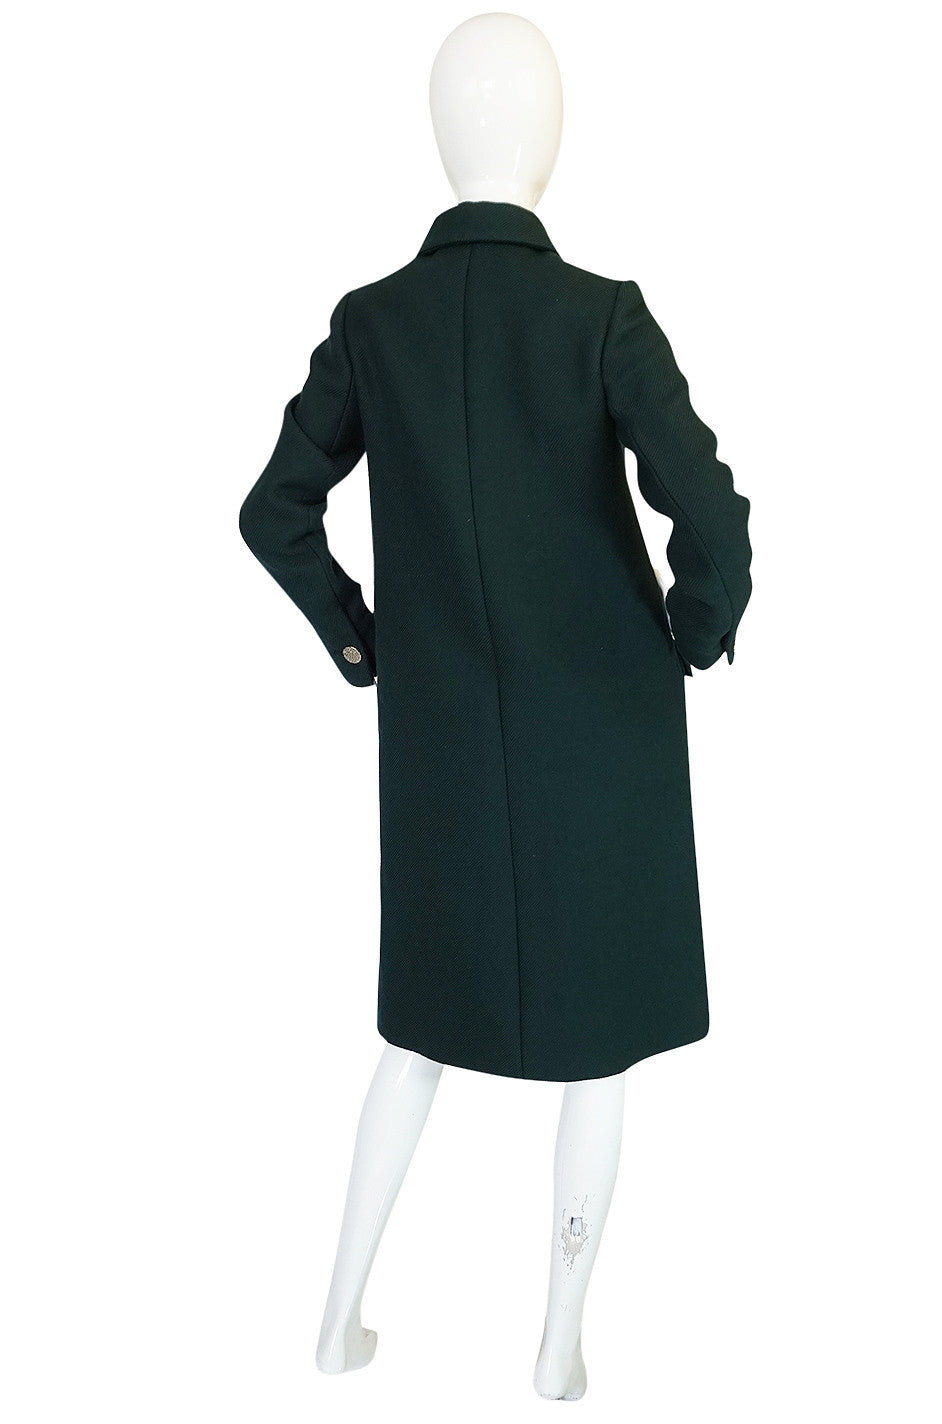 1960s Norell Green Wool With Silver Buttons Military Coat